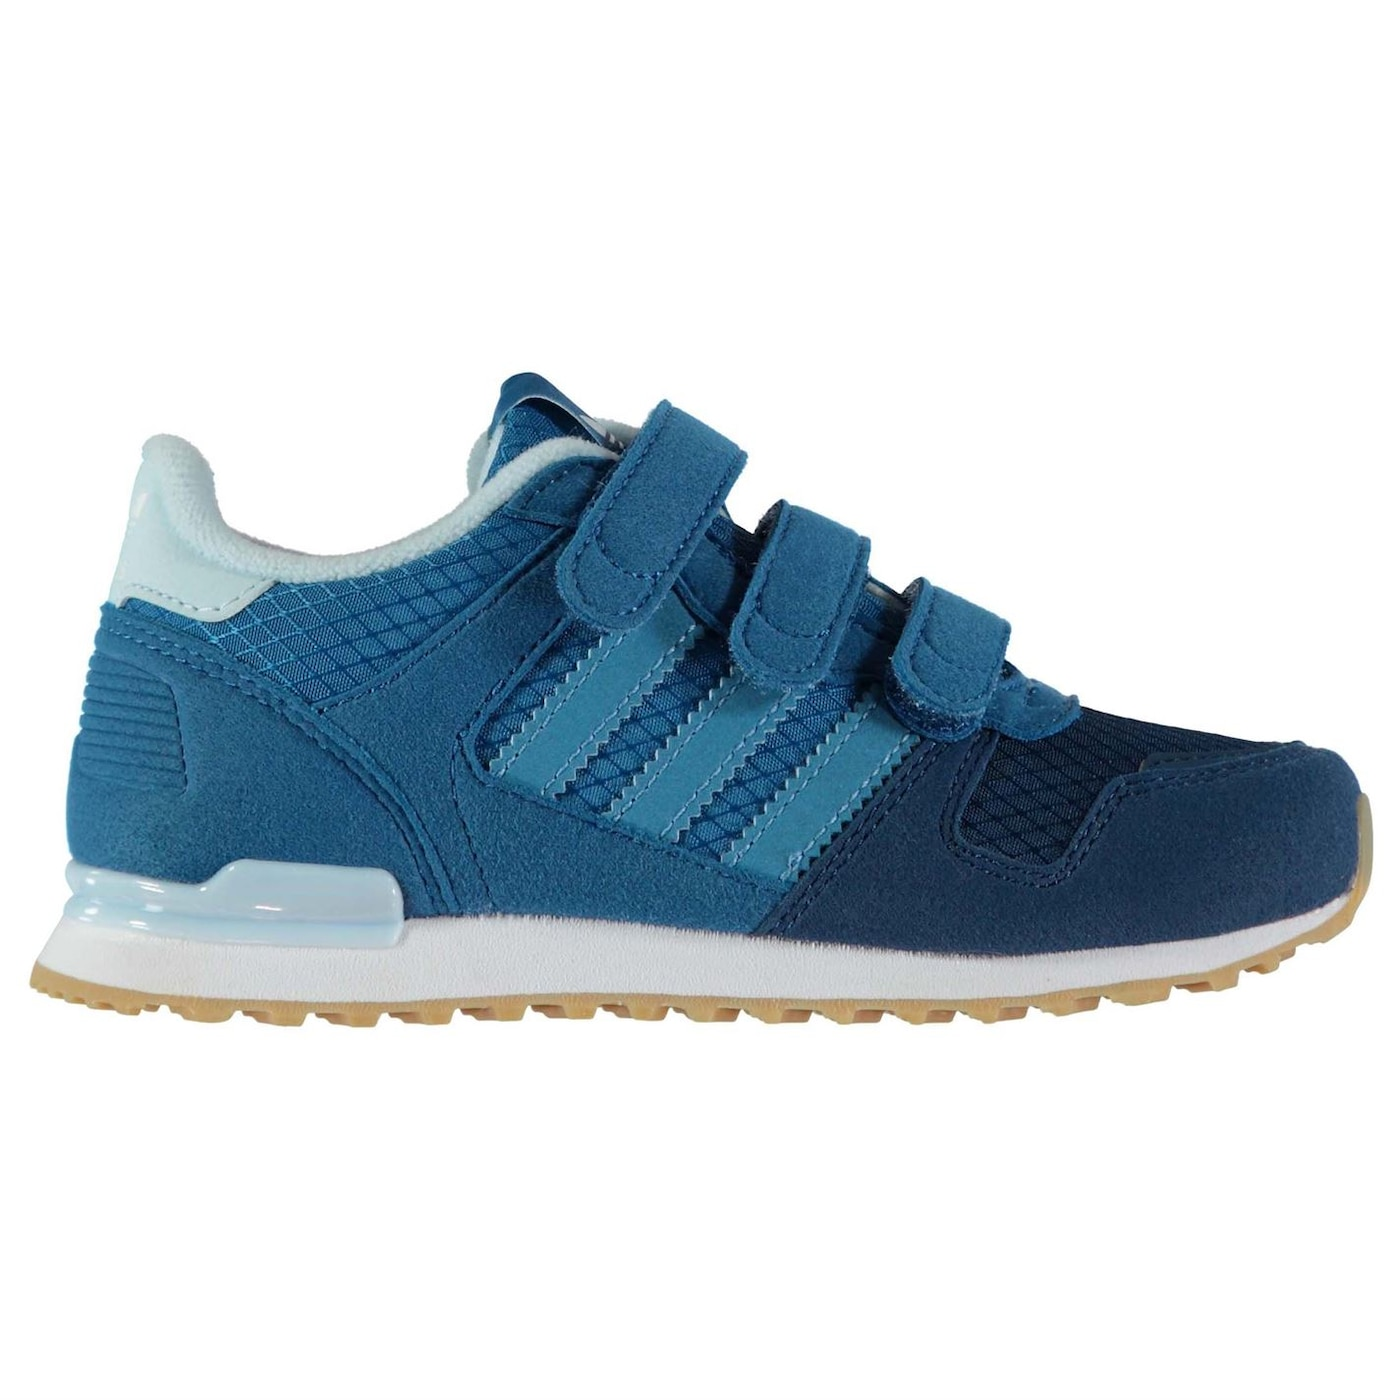 Adidas ZX 700 Childrens Trainers